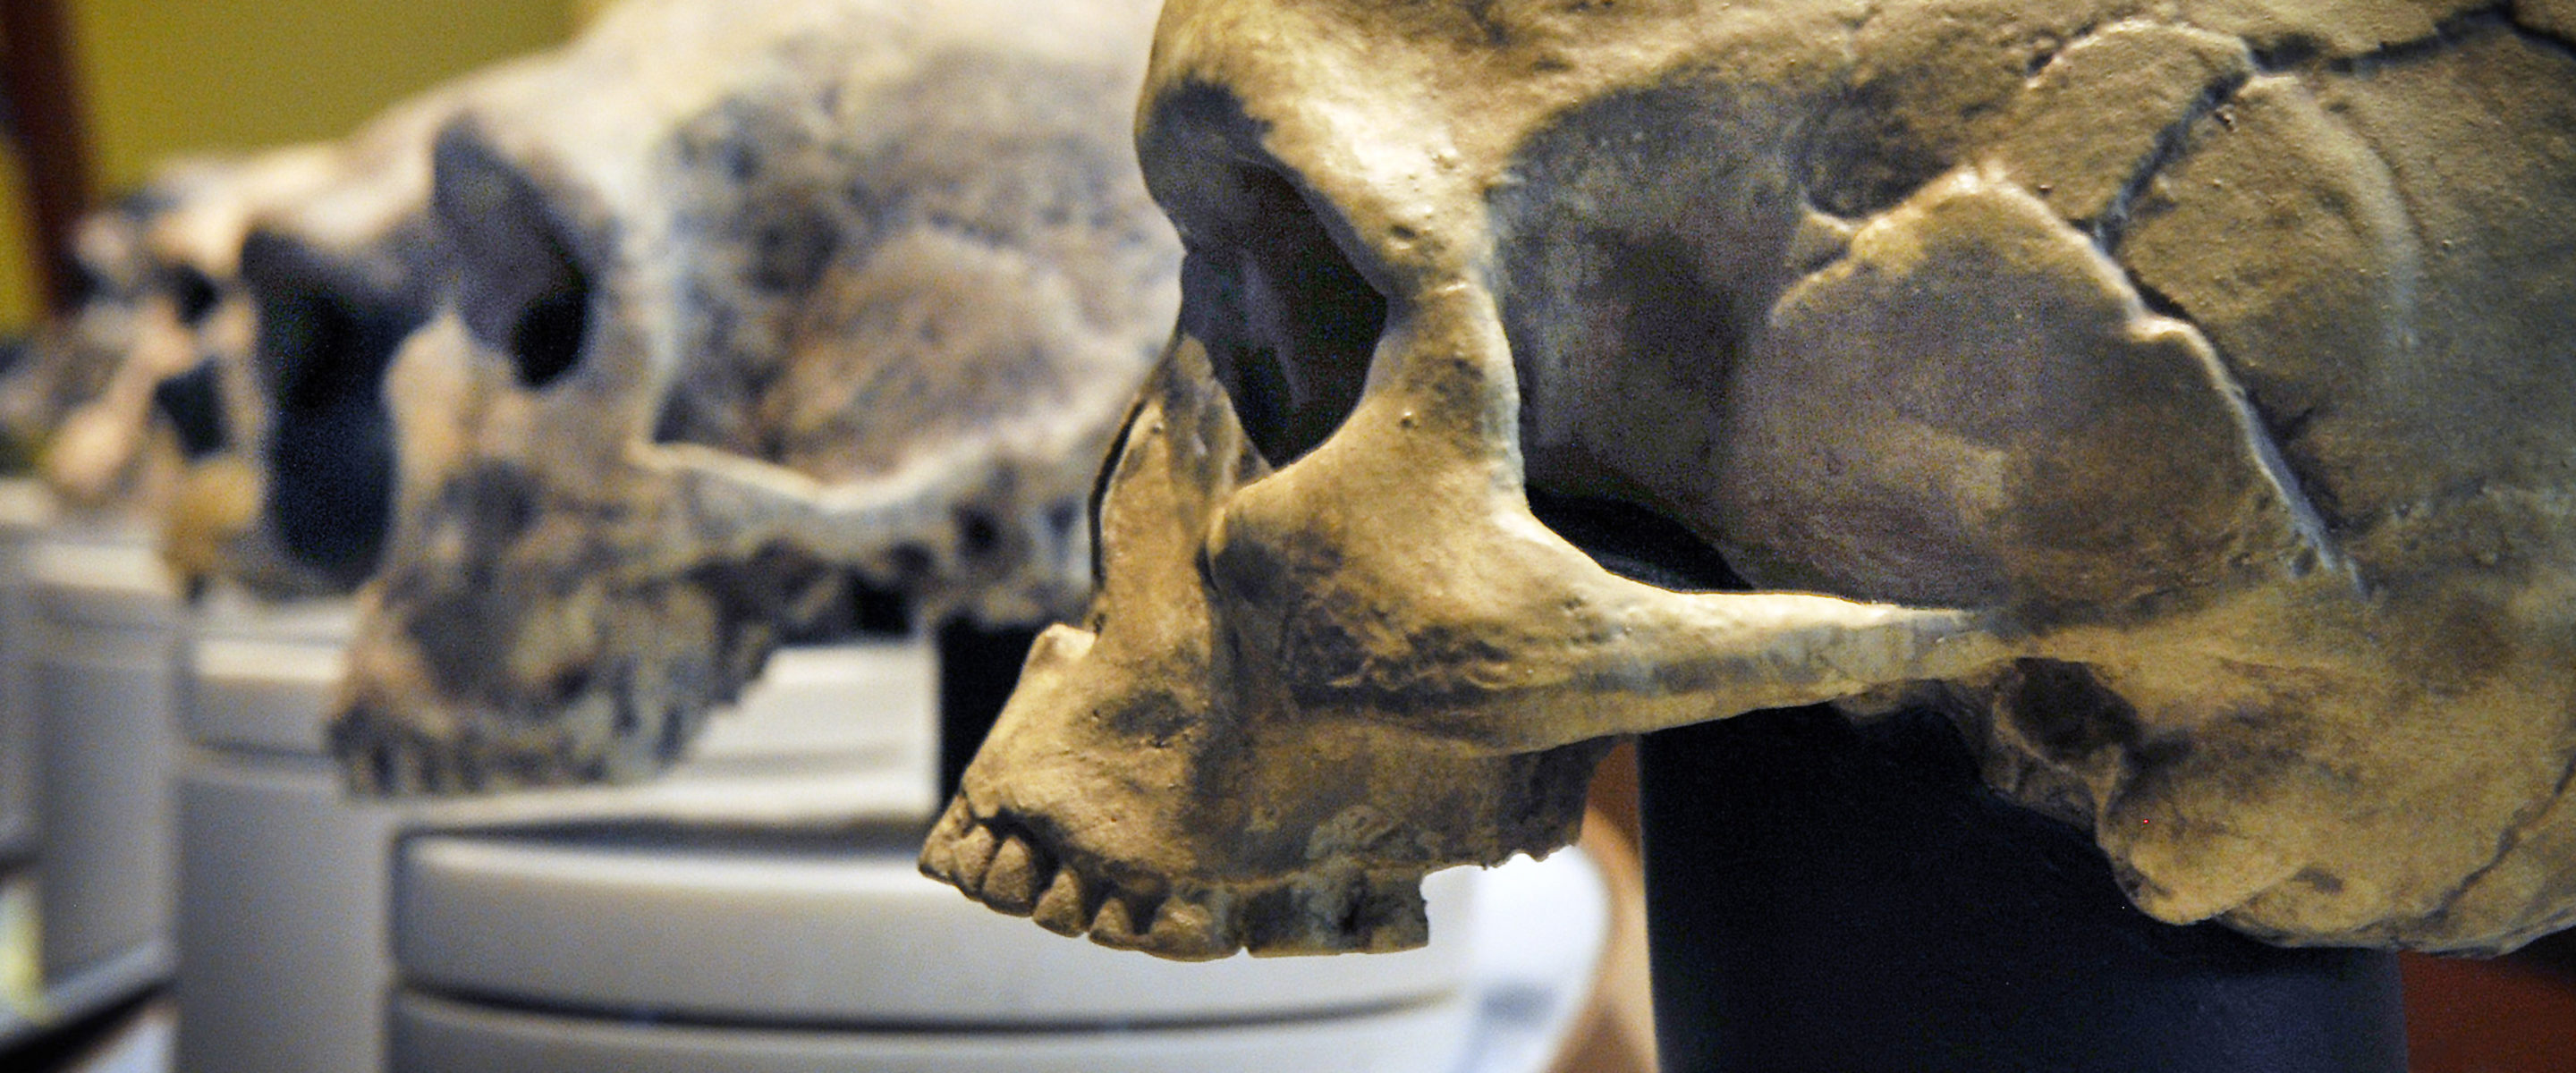 A row of skulls ending with homo sapiens, foreground, found at The Smithsonian Museum of Natural History's Hall of Human Origins.